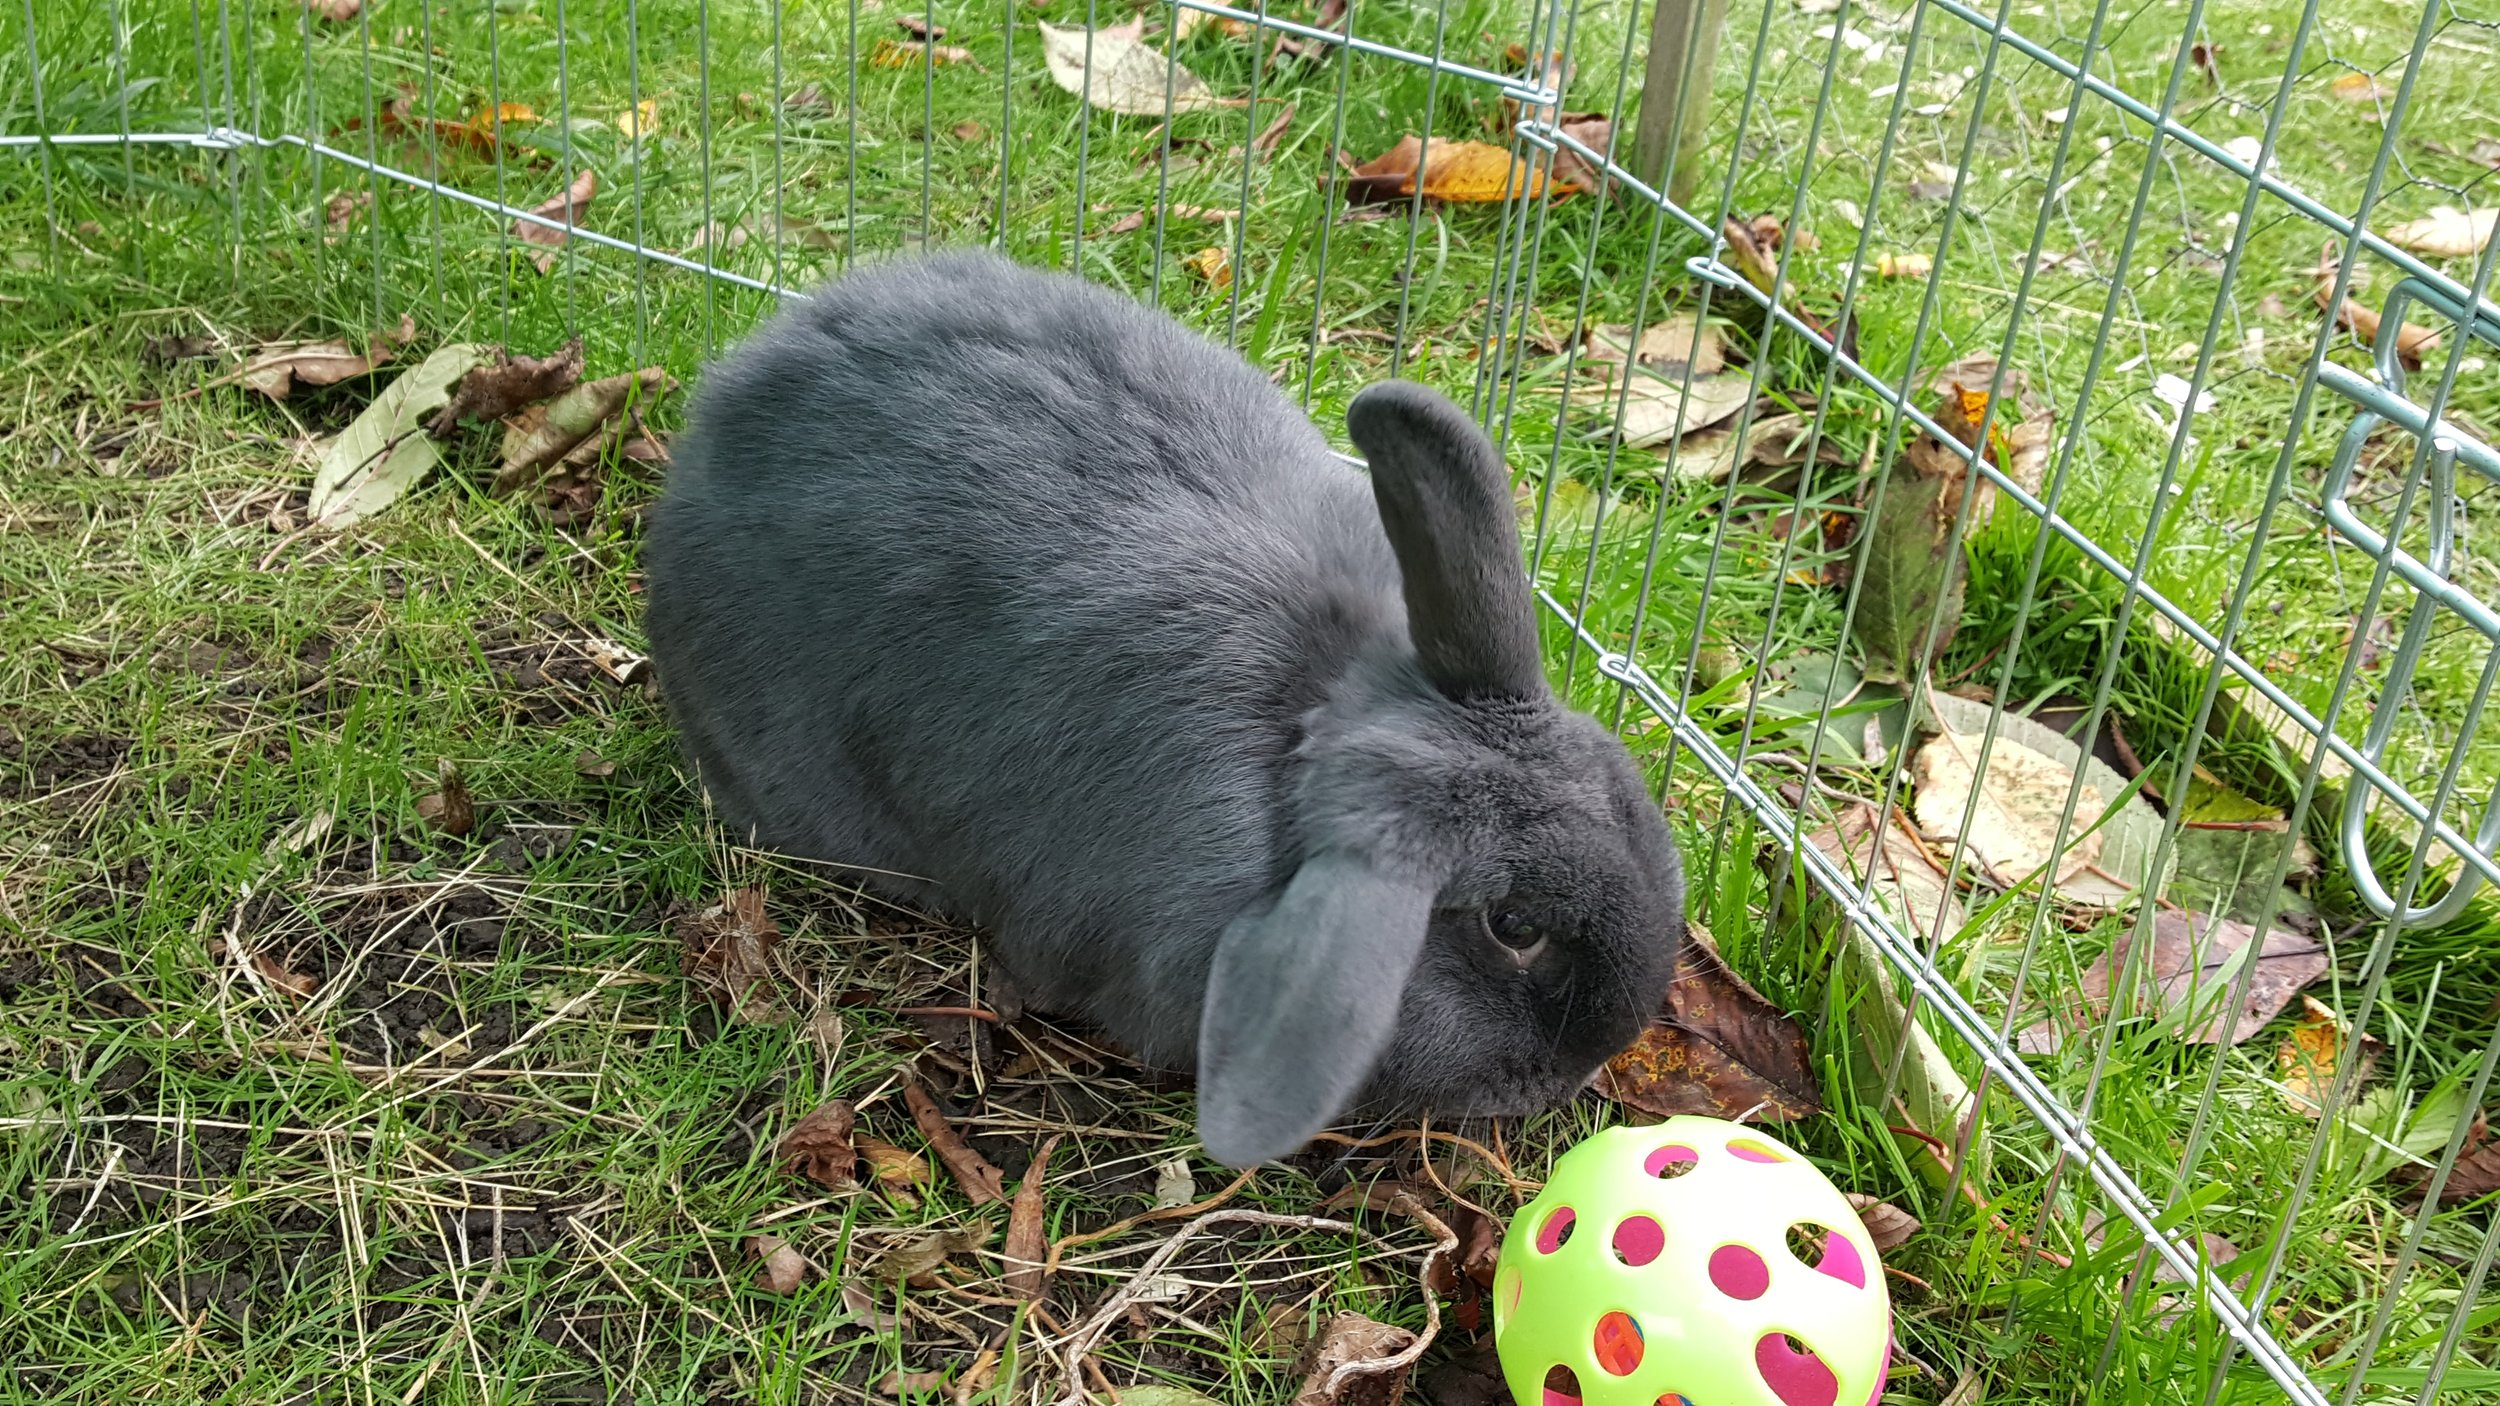 "SKITTLES  is our lovely mixed breed one ear up and one ear down bunny! She is around three years old and we don't know her exact birthday but her ""gotcha"" date is 20th April 2019. Like Bun Bun, she has settled beautifully and loves her adopted sisters and doggy brother!  Skittles is the first bunny we have had who didn't have a great start and she was re-homed to a couple who did a wonderful job with her. She has grown from a bunny who didn't even want to be stroked into a happy, friendly and confident girl who loves to be petted and to interact with everyone!   LIKES  spinach, kale and bunny biscuits (not too many though)! Also loves to greet people and especially likes children. She is another member of the Enzo fan club!   DISLIKES  having to wait for her veggies to be put down so she can tuck in. Both Skittles and Bun Bun think we need to hurry up a bit when it comes to serving rabbit dinners!"